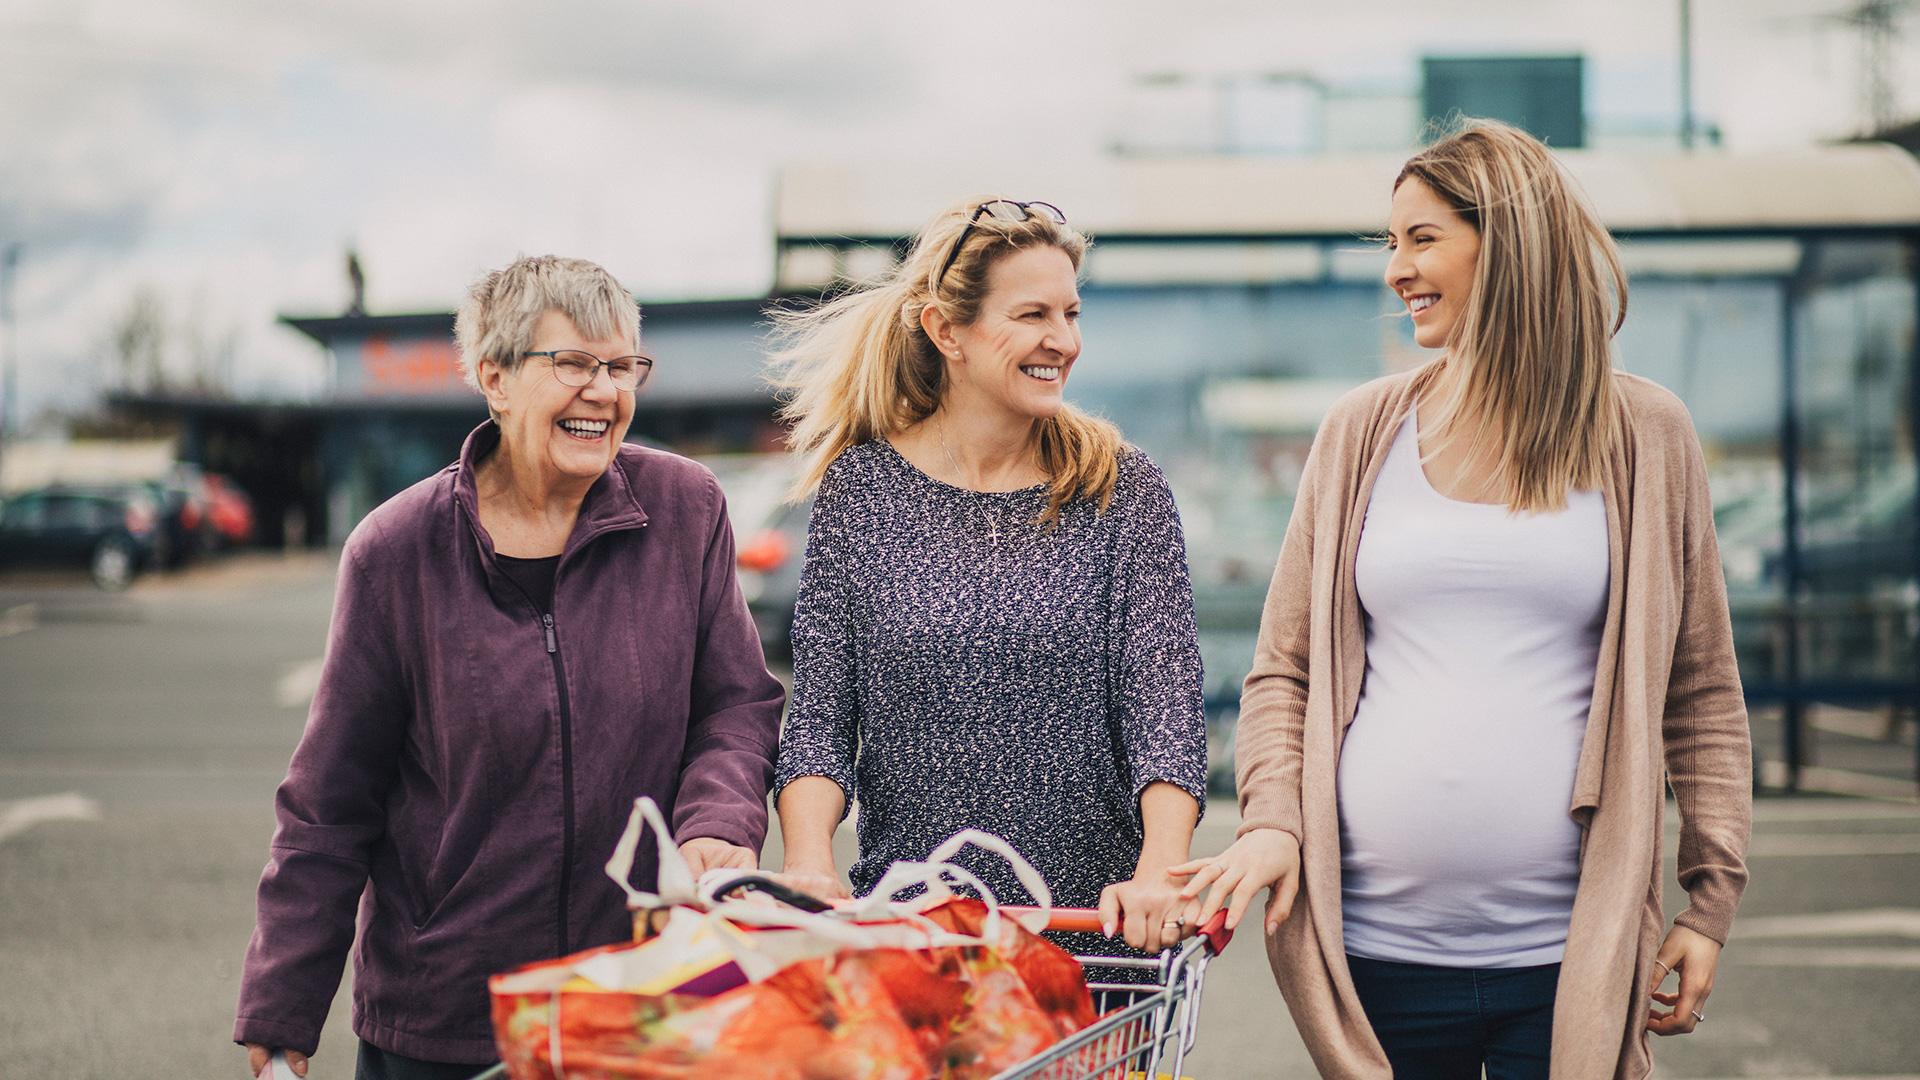 Older woman, middle aged woman and pregnant woman grocery shopping.